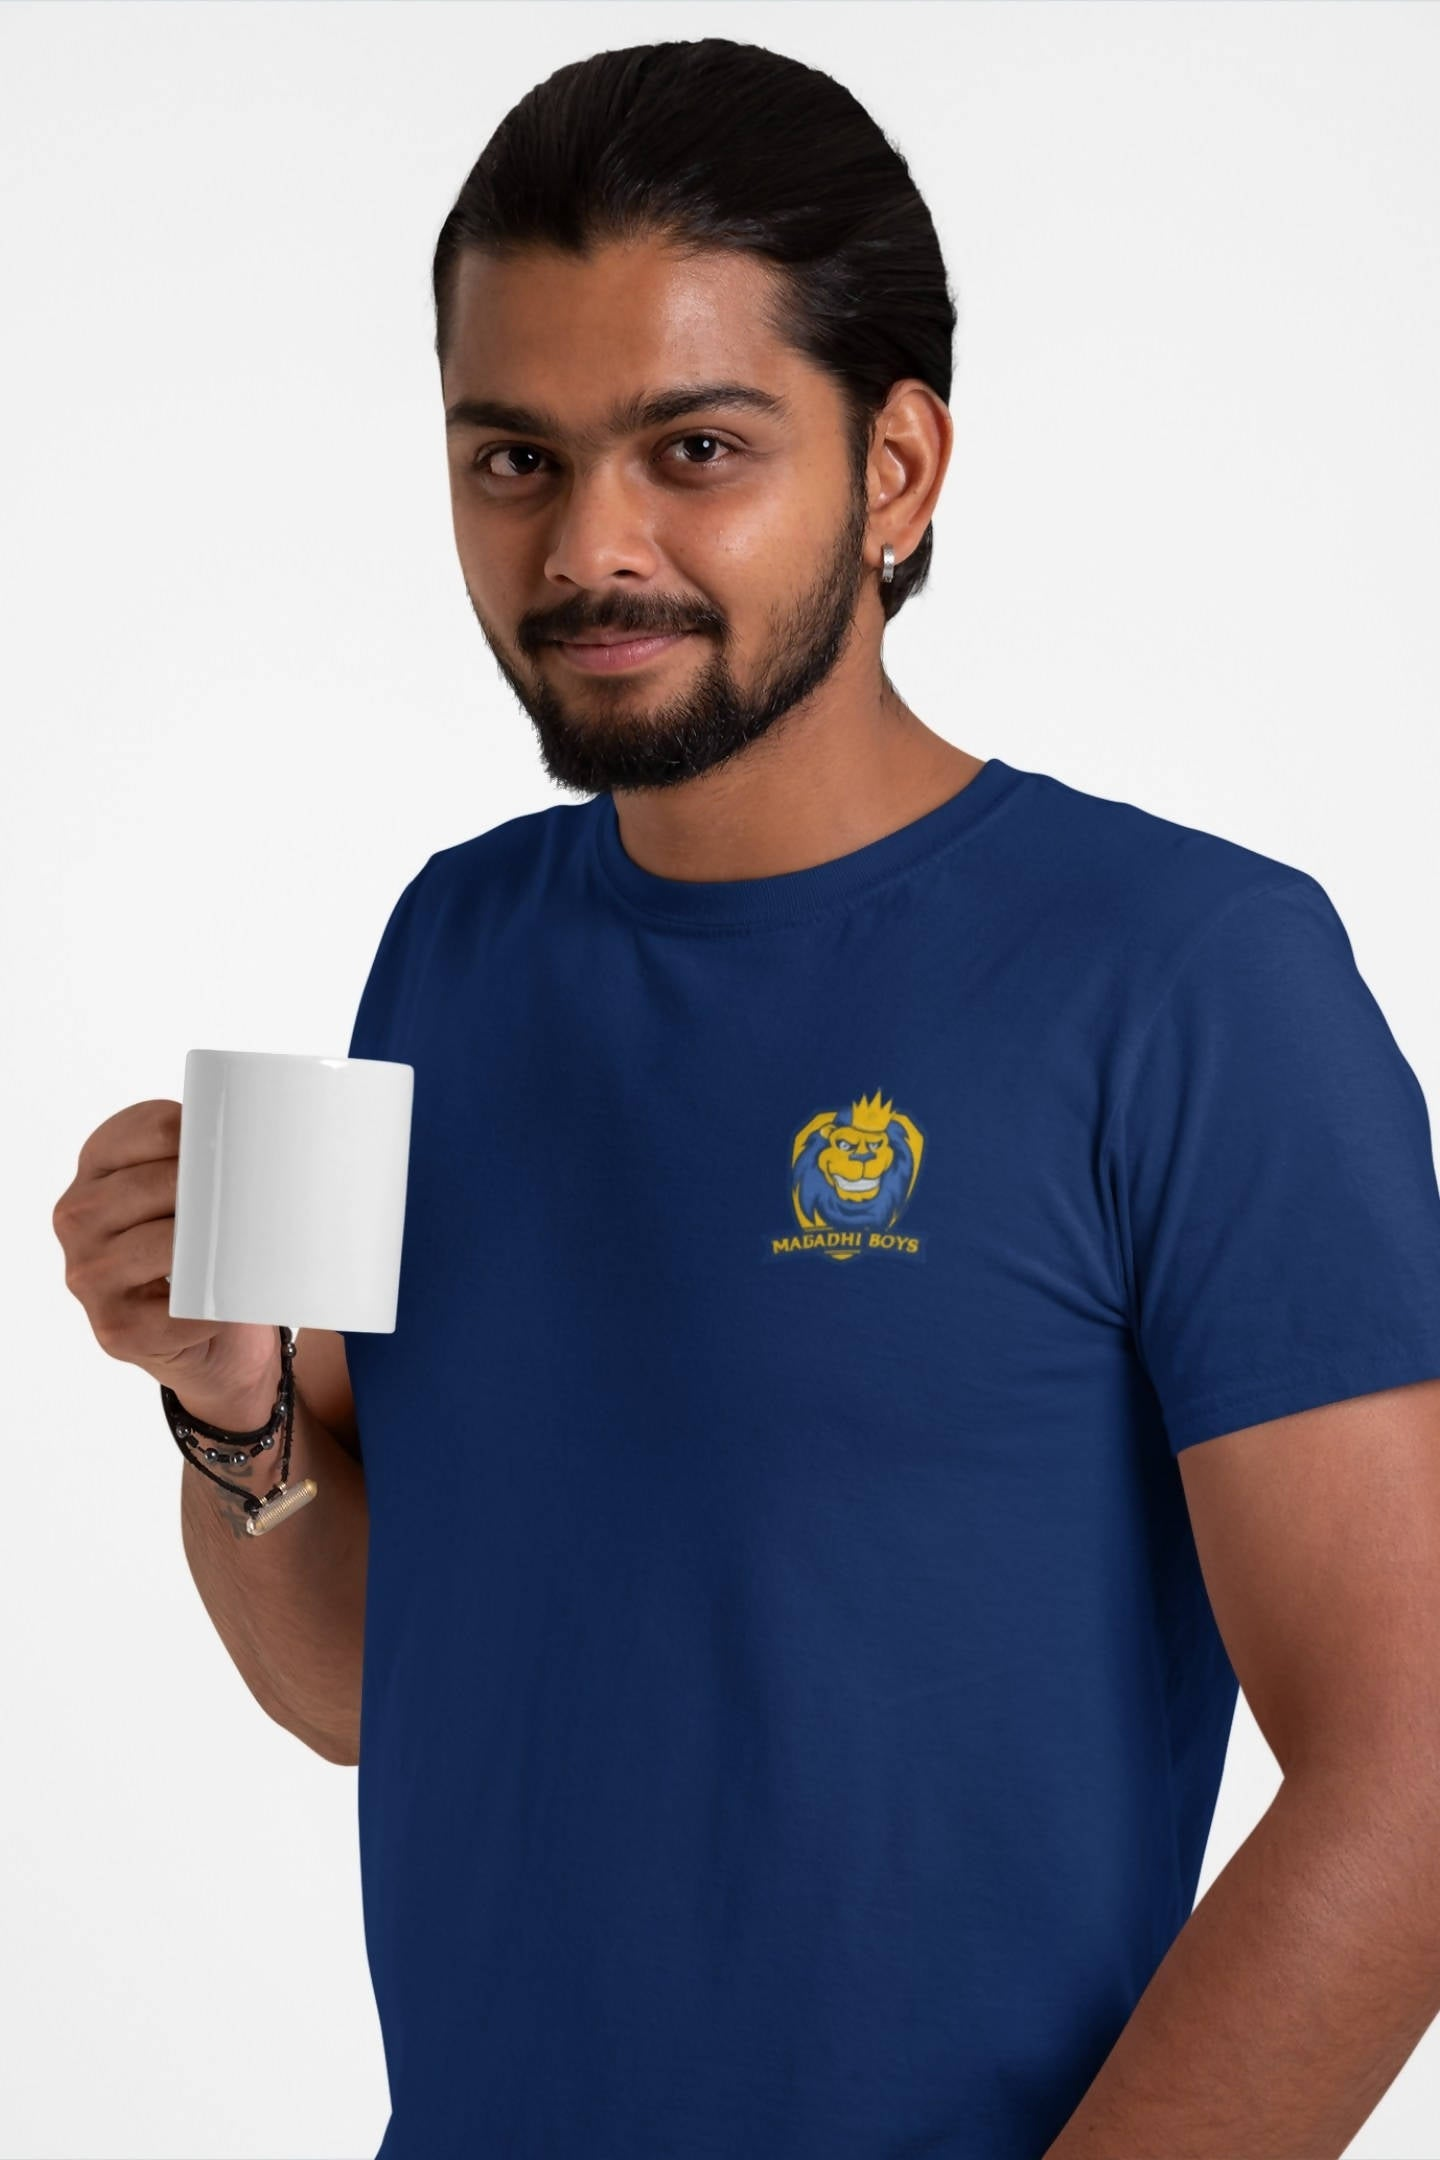 Men's Magadhi Boys Small Logo Printed T-shirt